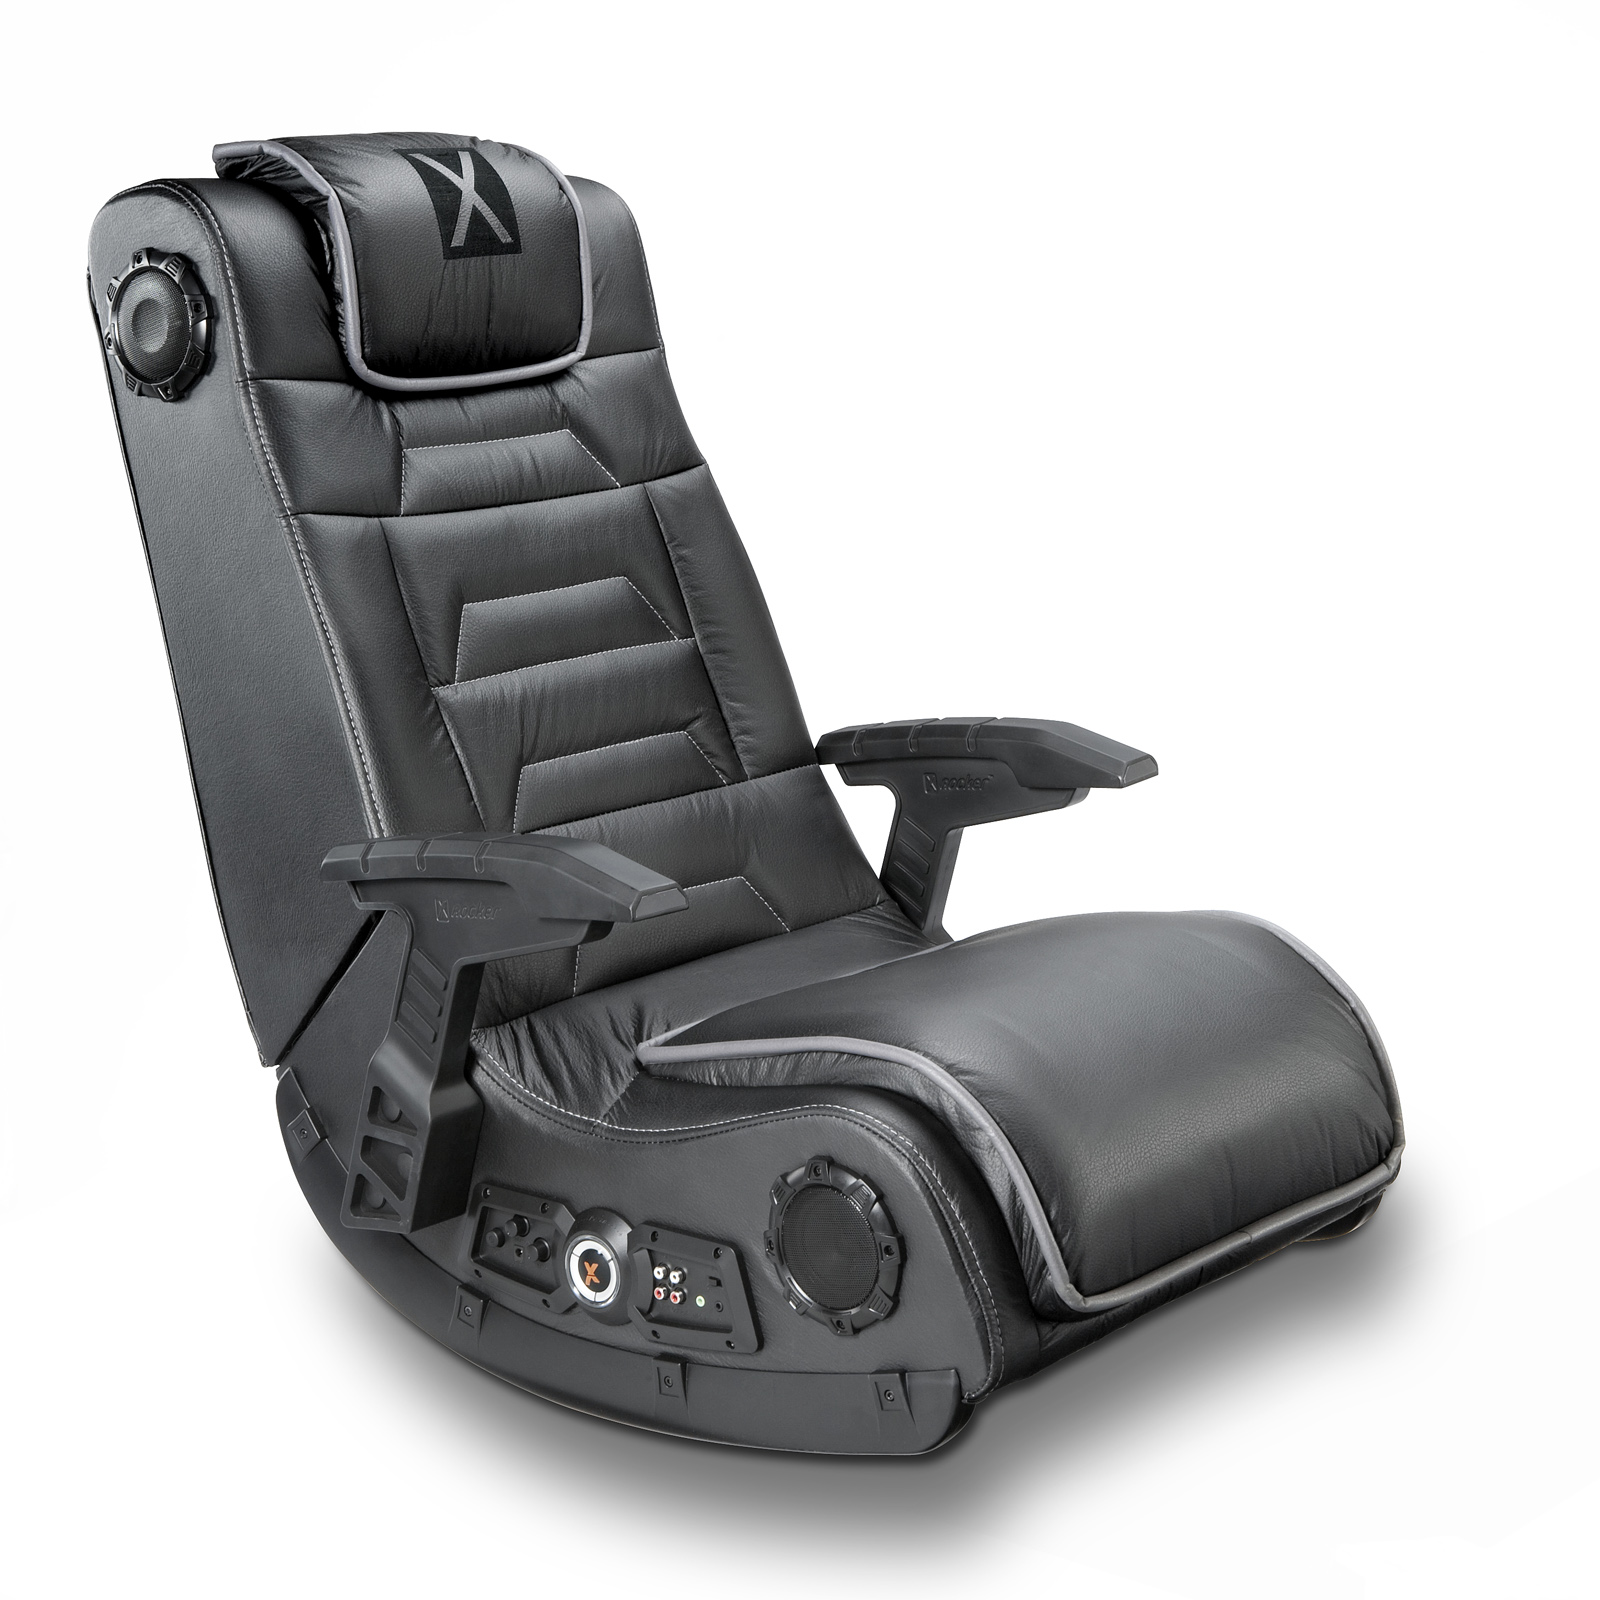 Video Games Chair Ace Bayou X Rocker Pro Series H3 Video Game Chair With